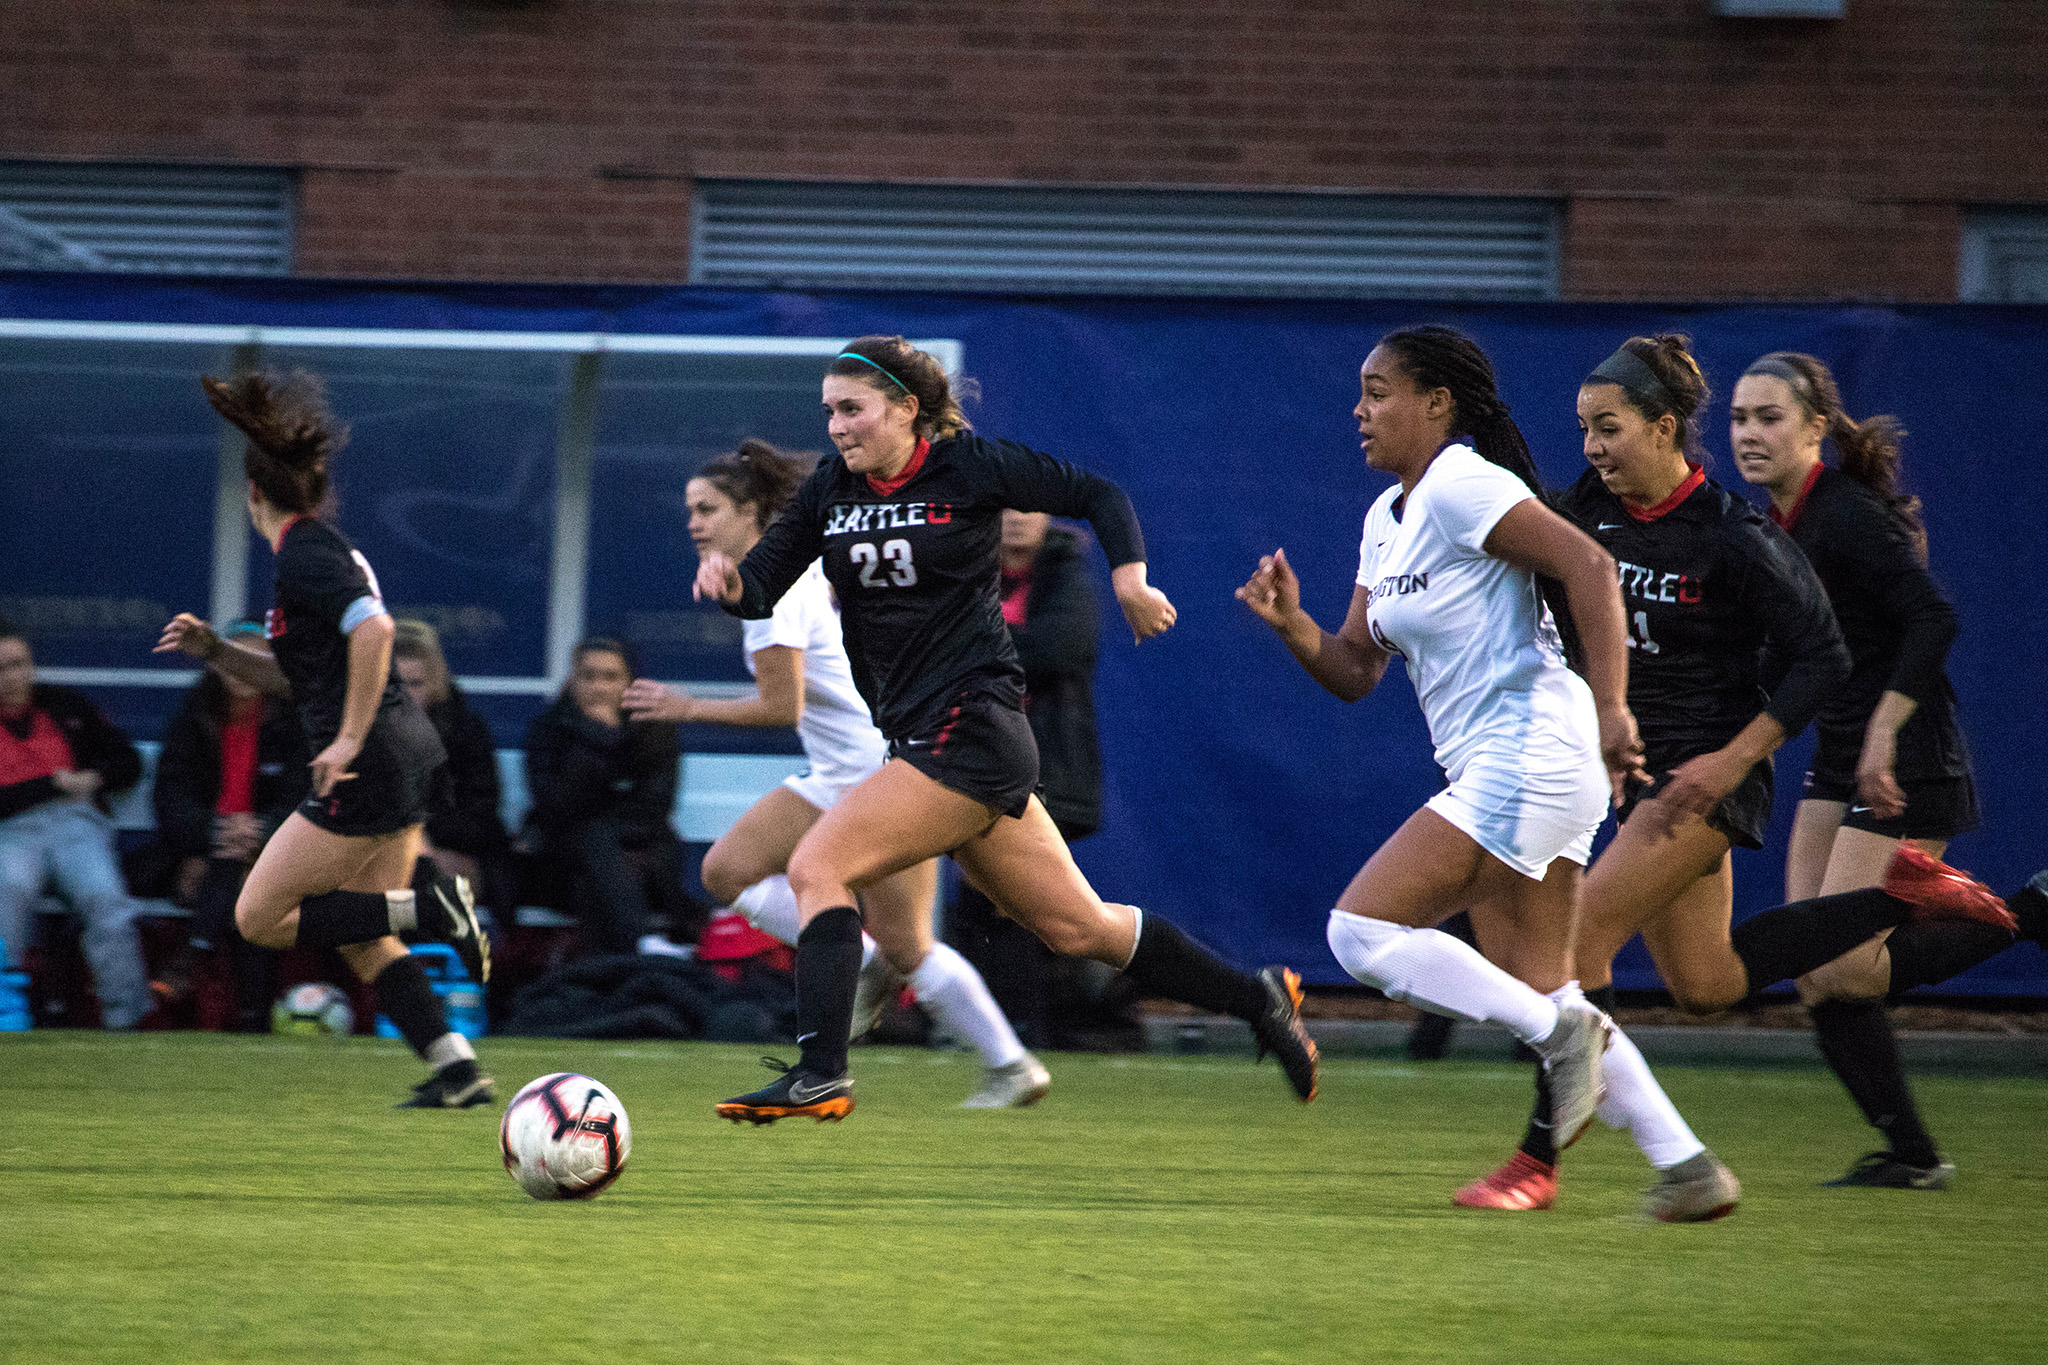 Junior Midfielder, Holly Rothering, dribbles past UW player as she charges to the goal.